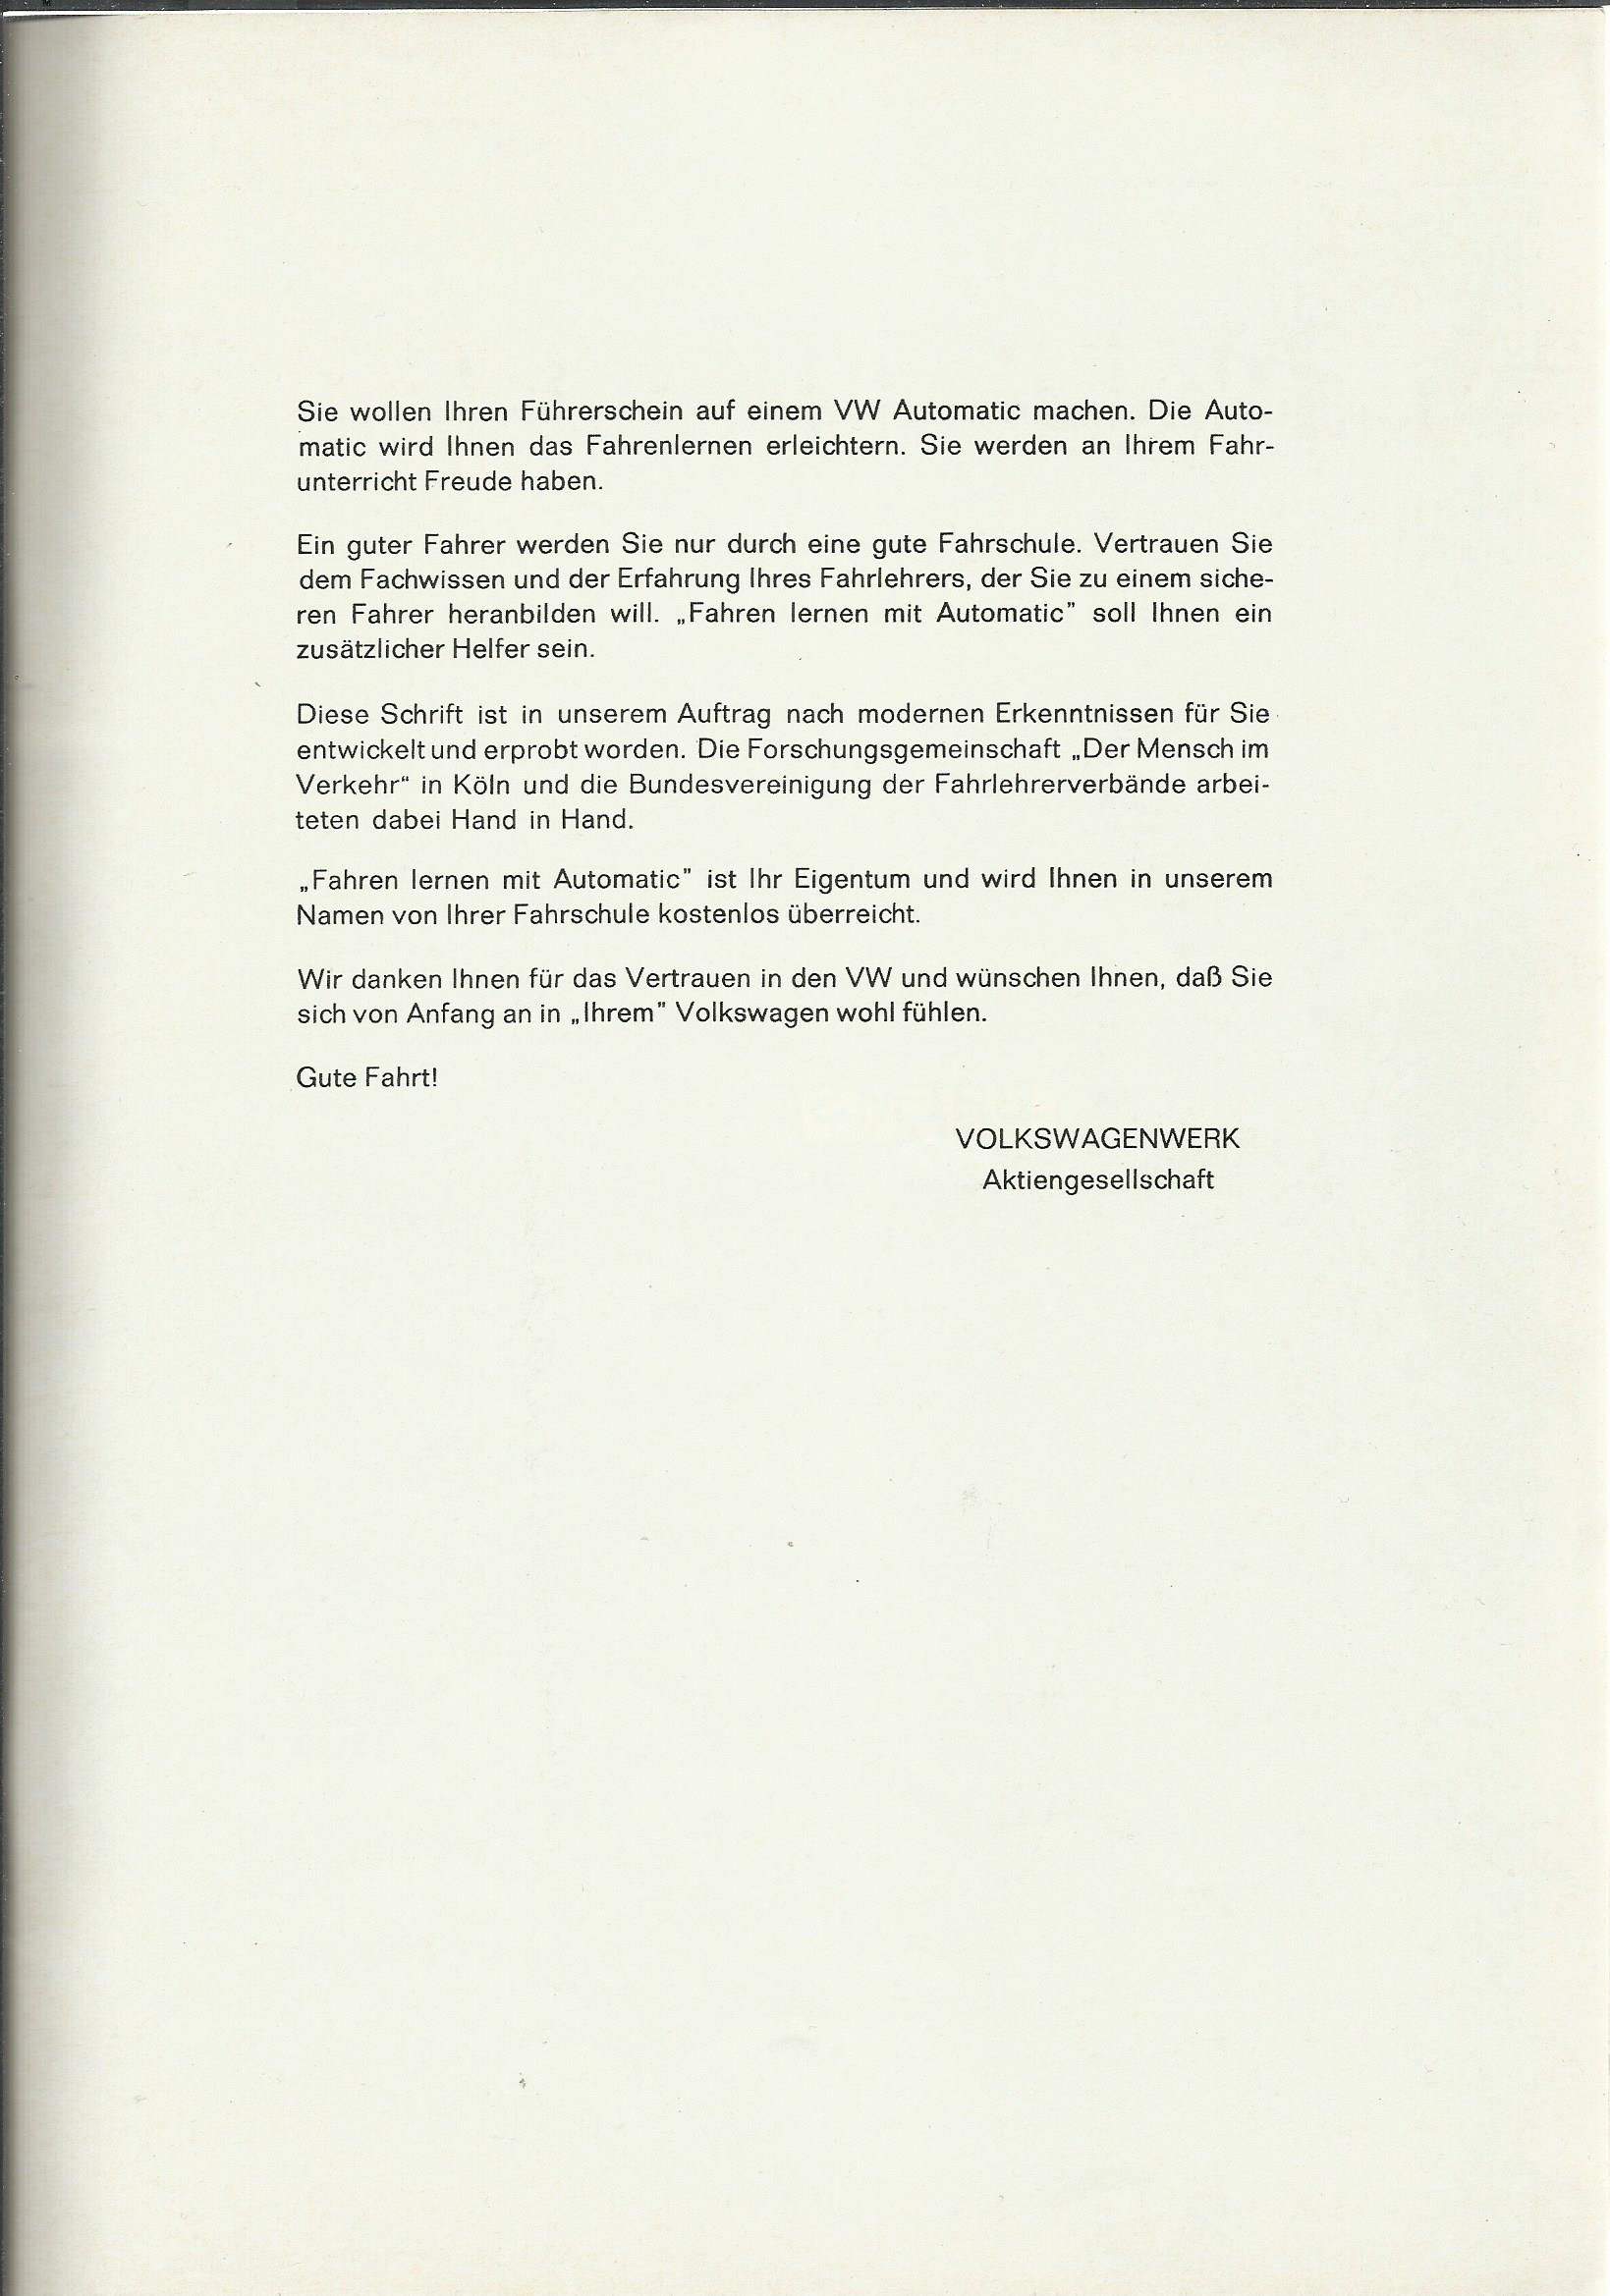 Vw Archives 1969 Automatic Booklet German For A 197679 Http Wwwthesambacom Inf Wiringjpg